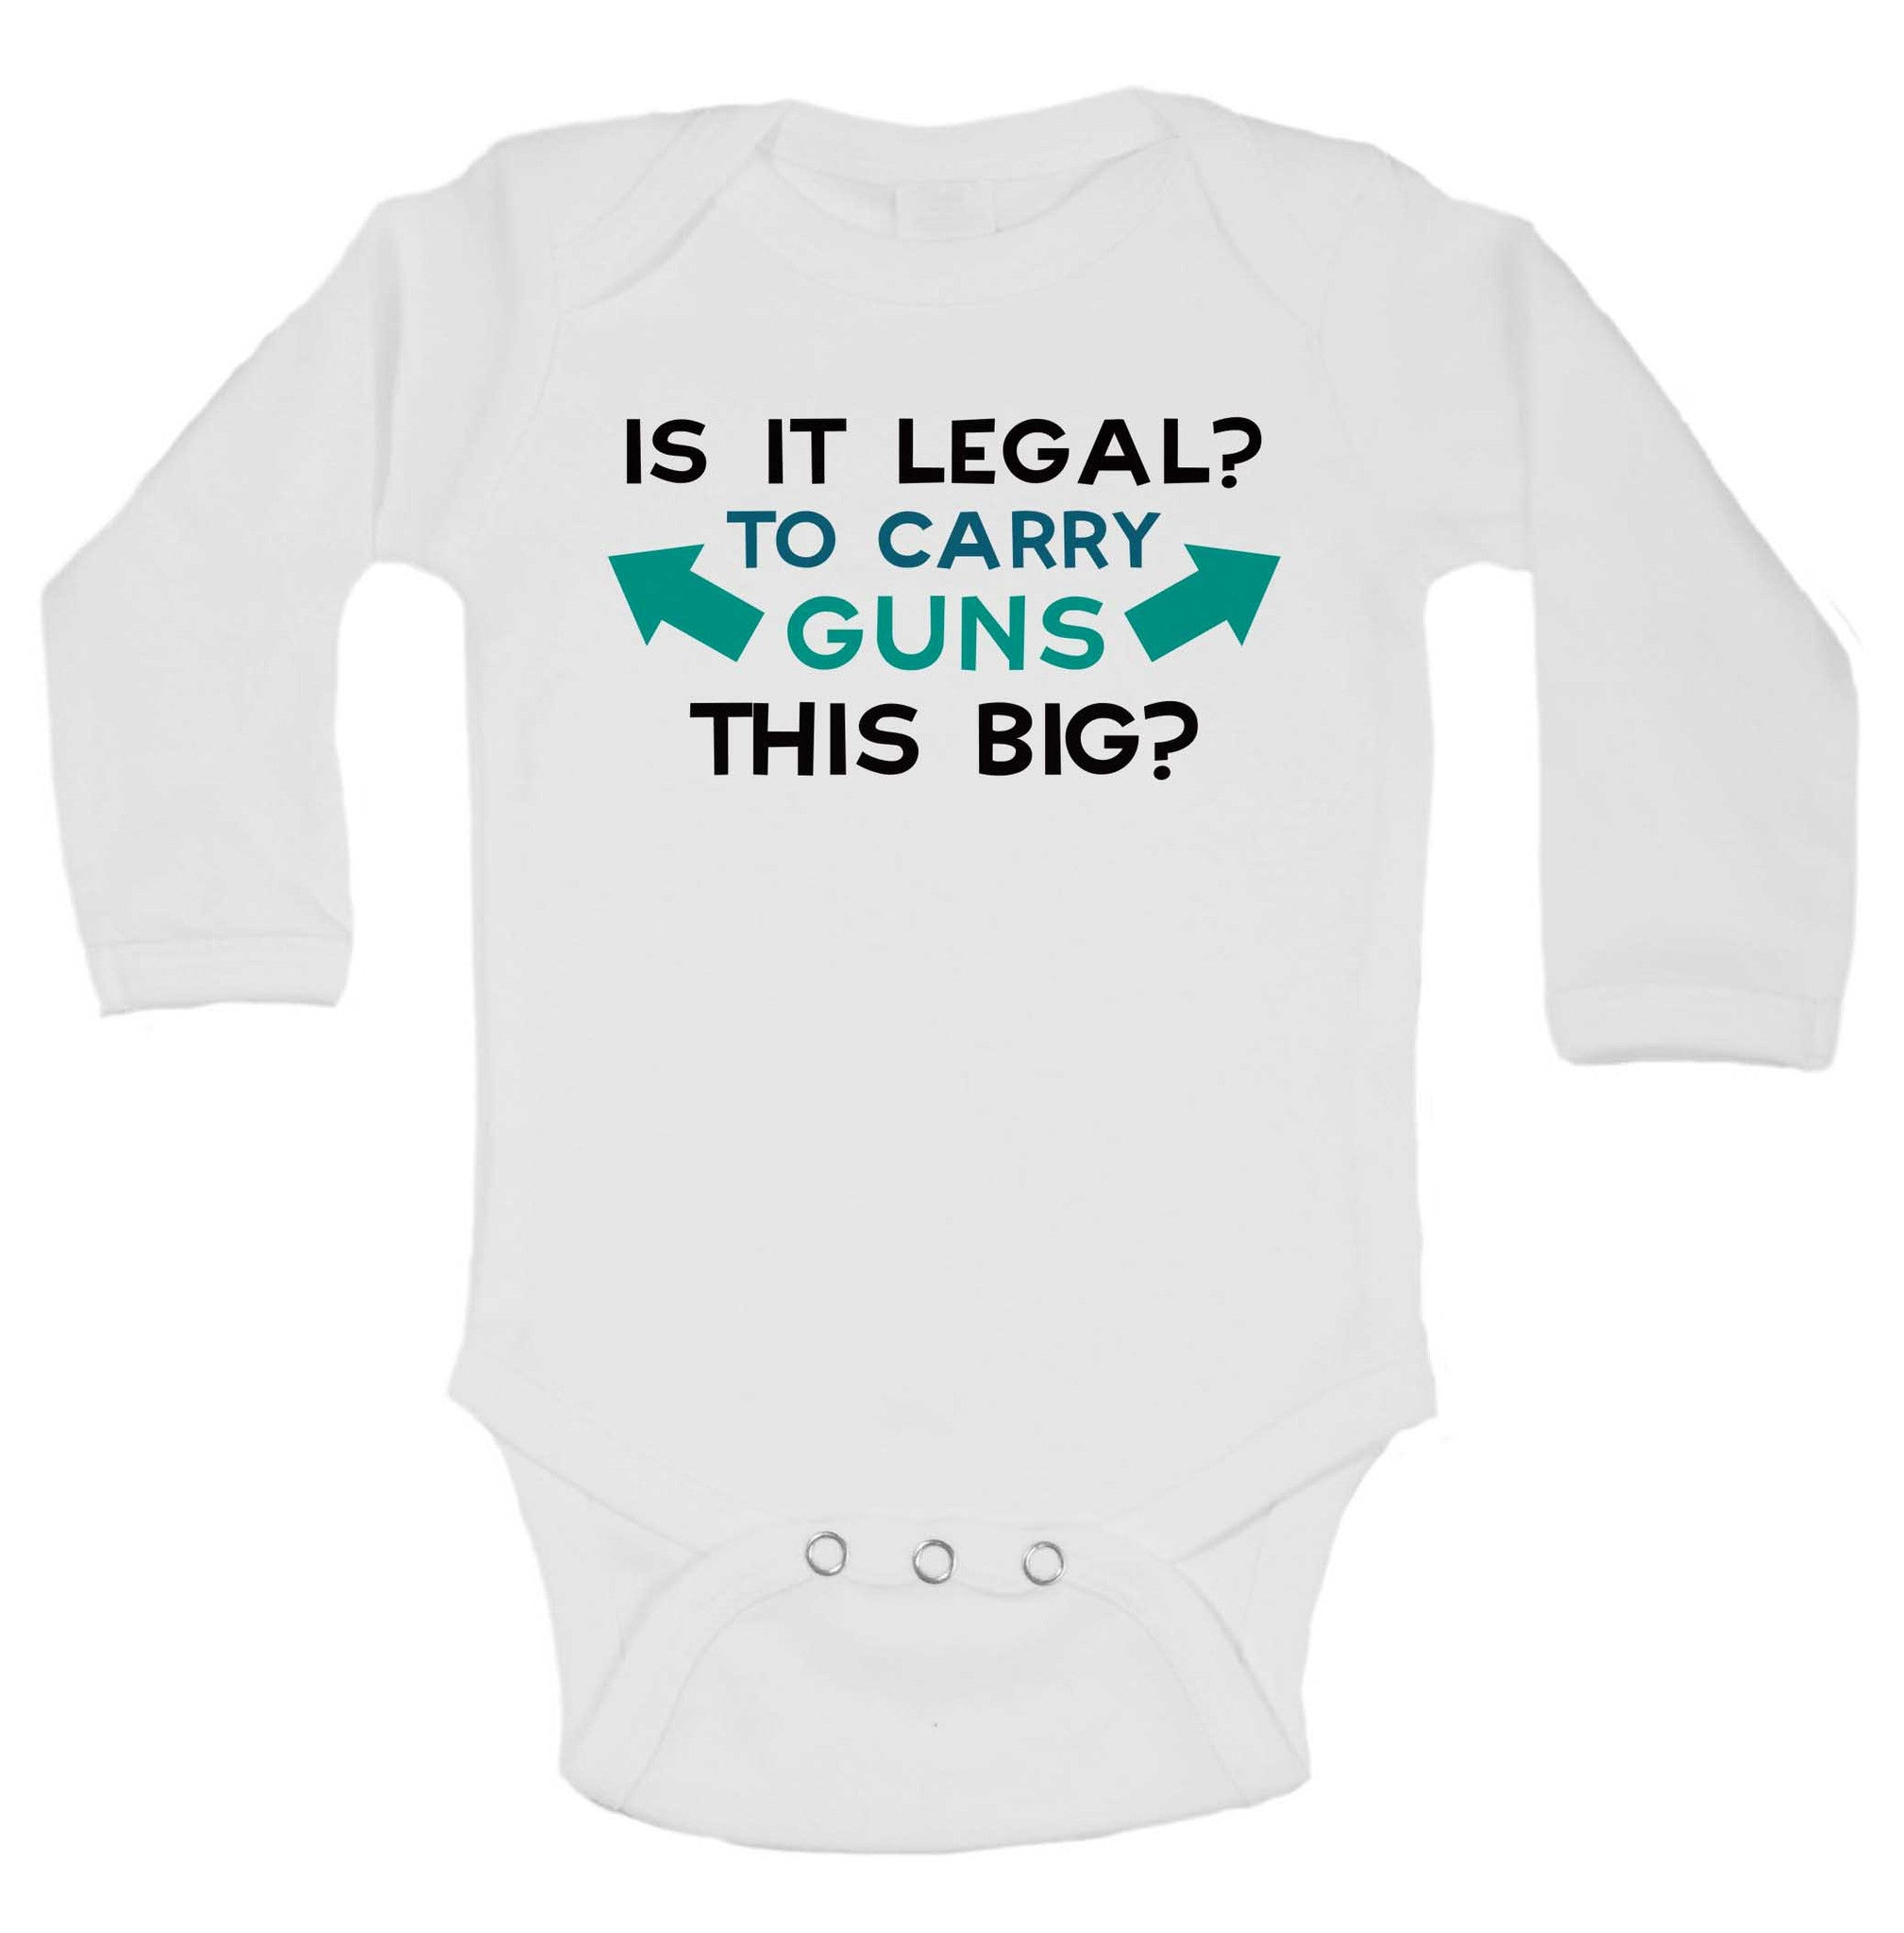 Is It Legal? To Carry Guns This Big? Funny Kids Onesie - 179 - Funny Shirts Tank Tops Burnouts and Triblends  - 1